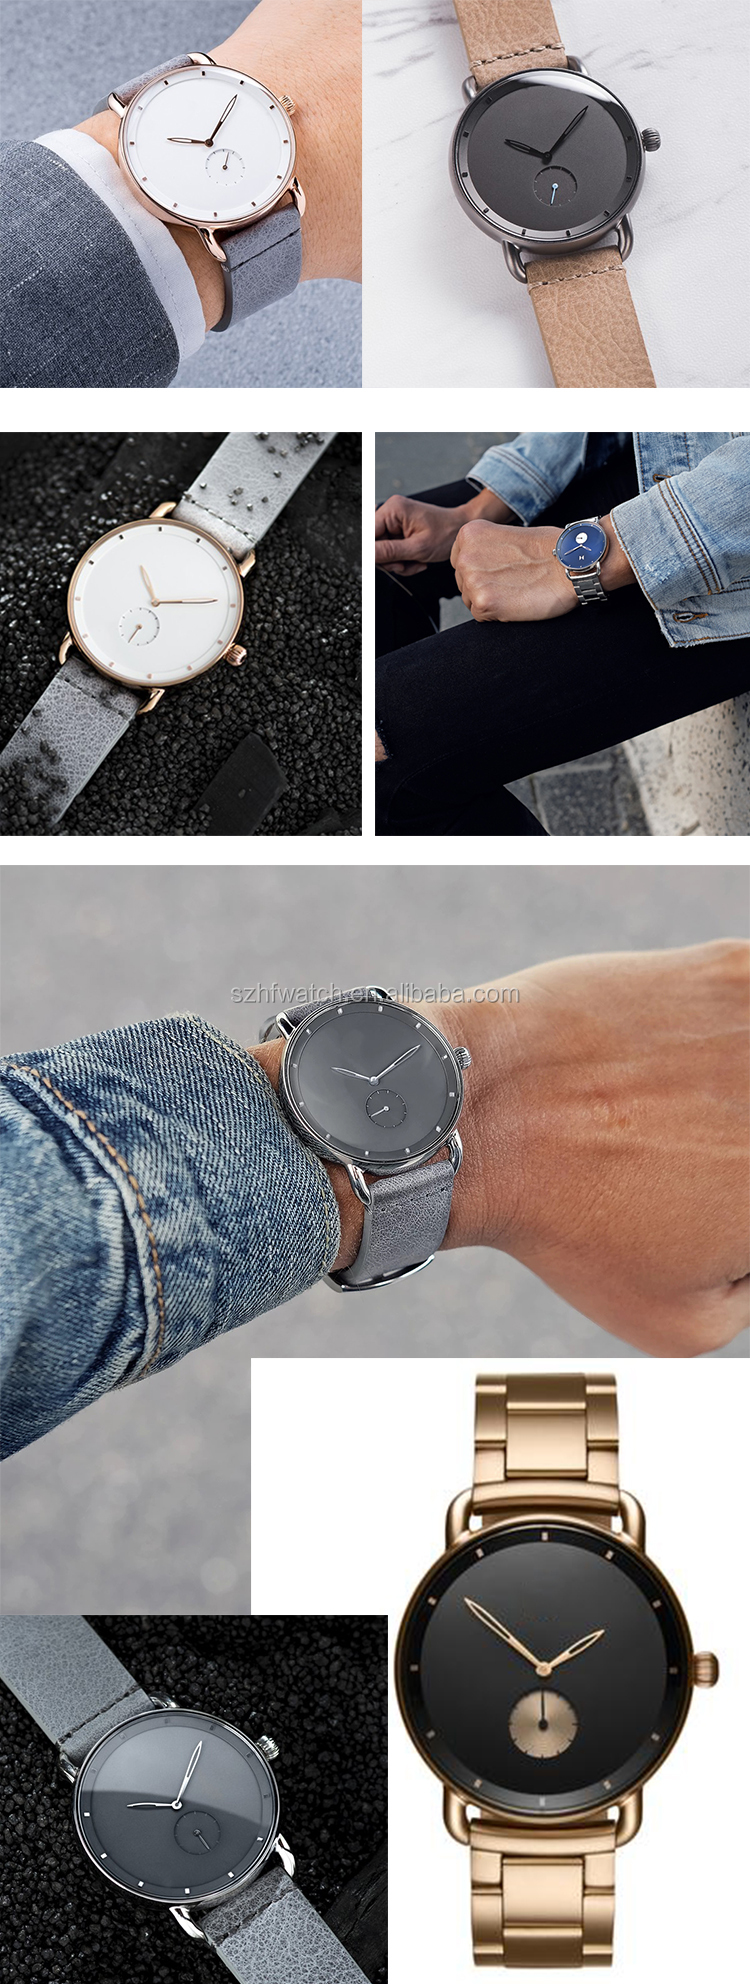 Men Watches 2019 Custom Luxury Watch